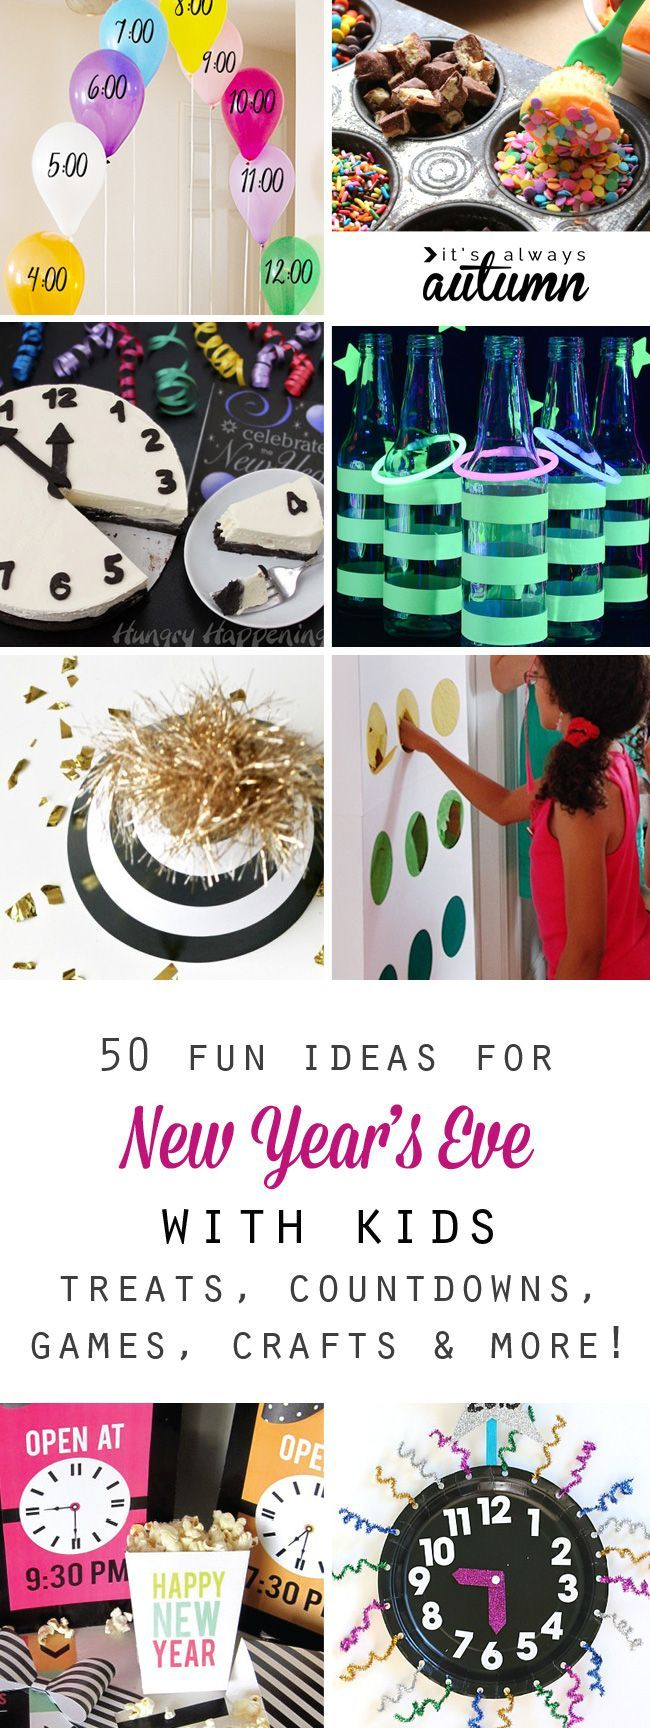 50 best ideas for celebrating New Year\'s Eve with kids | Fun things ...